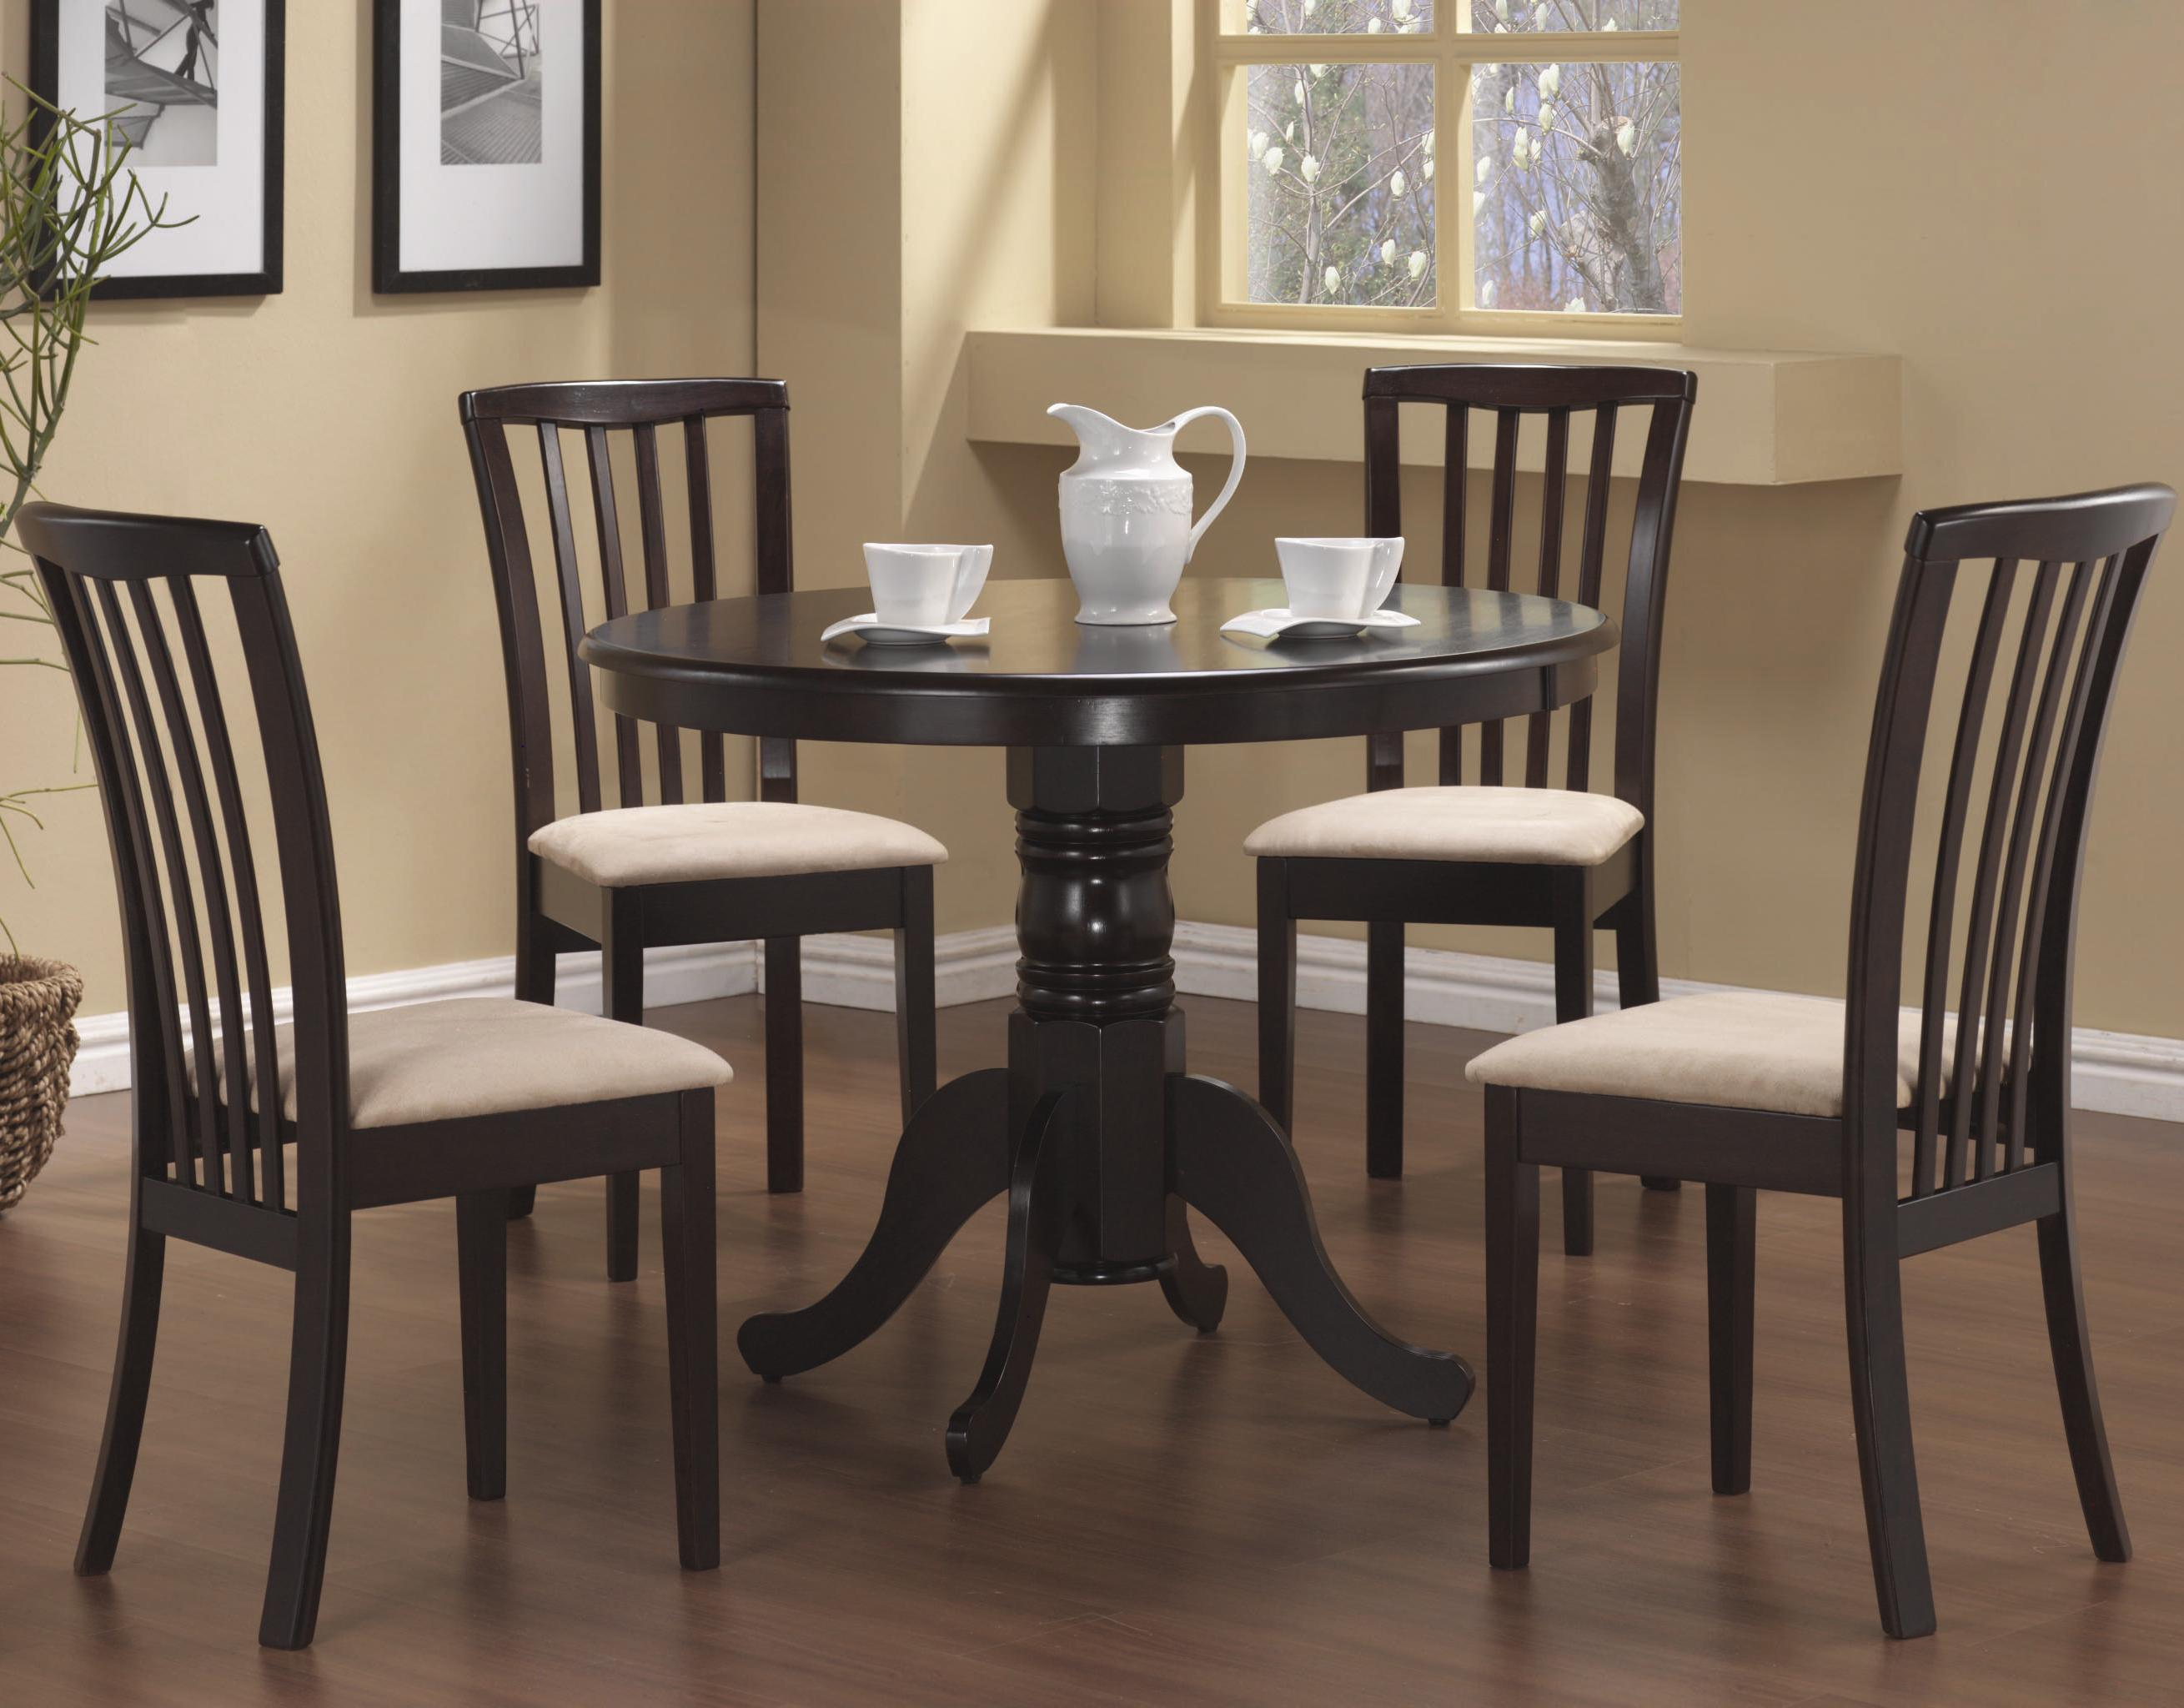 Coaster 101081 Brannan Table And Chairs Curley S Furniture Store Des Moines Iowa